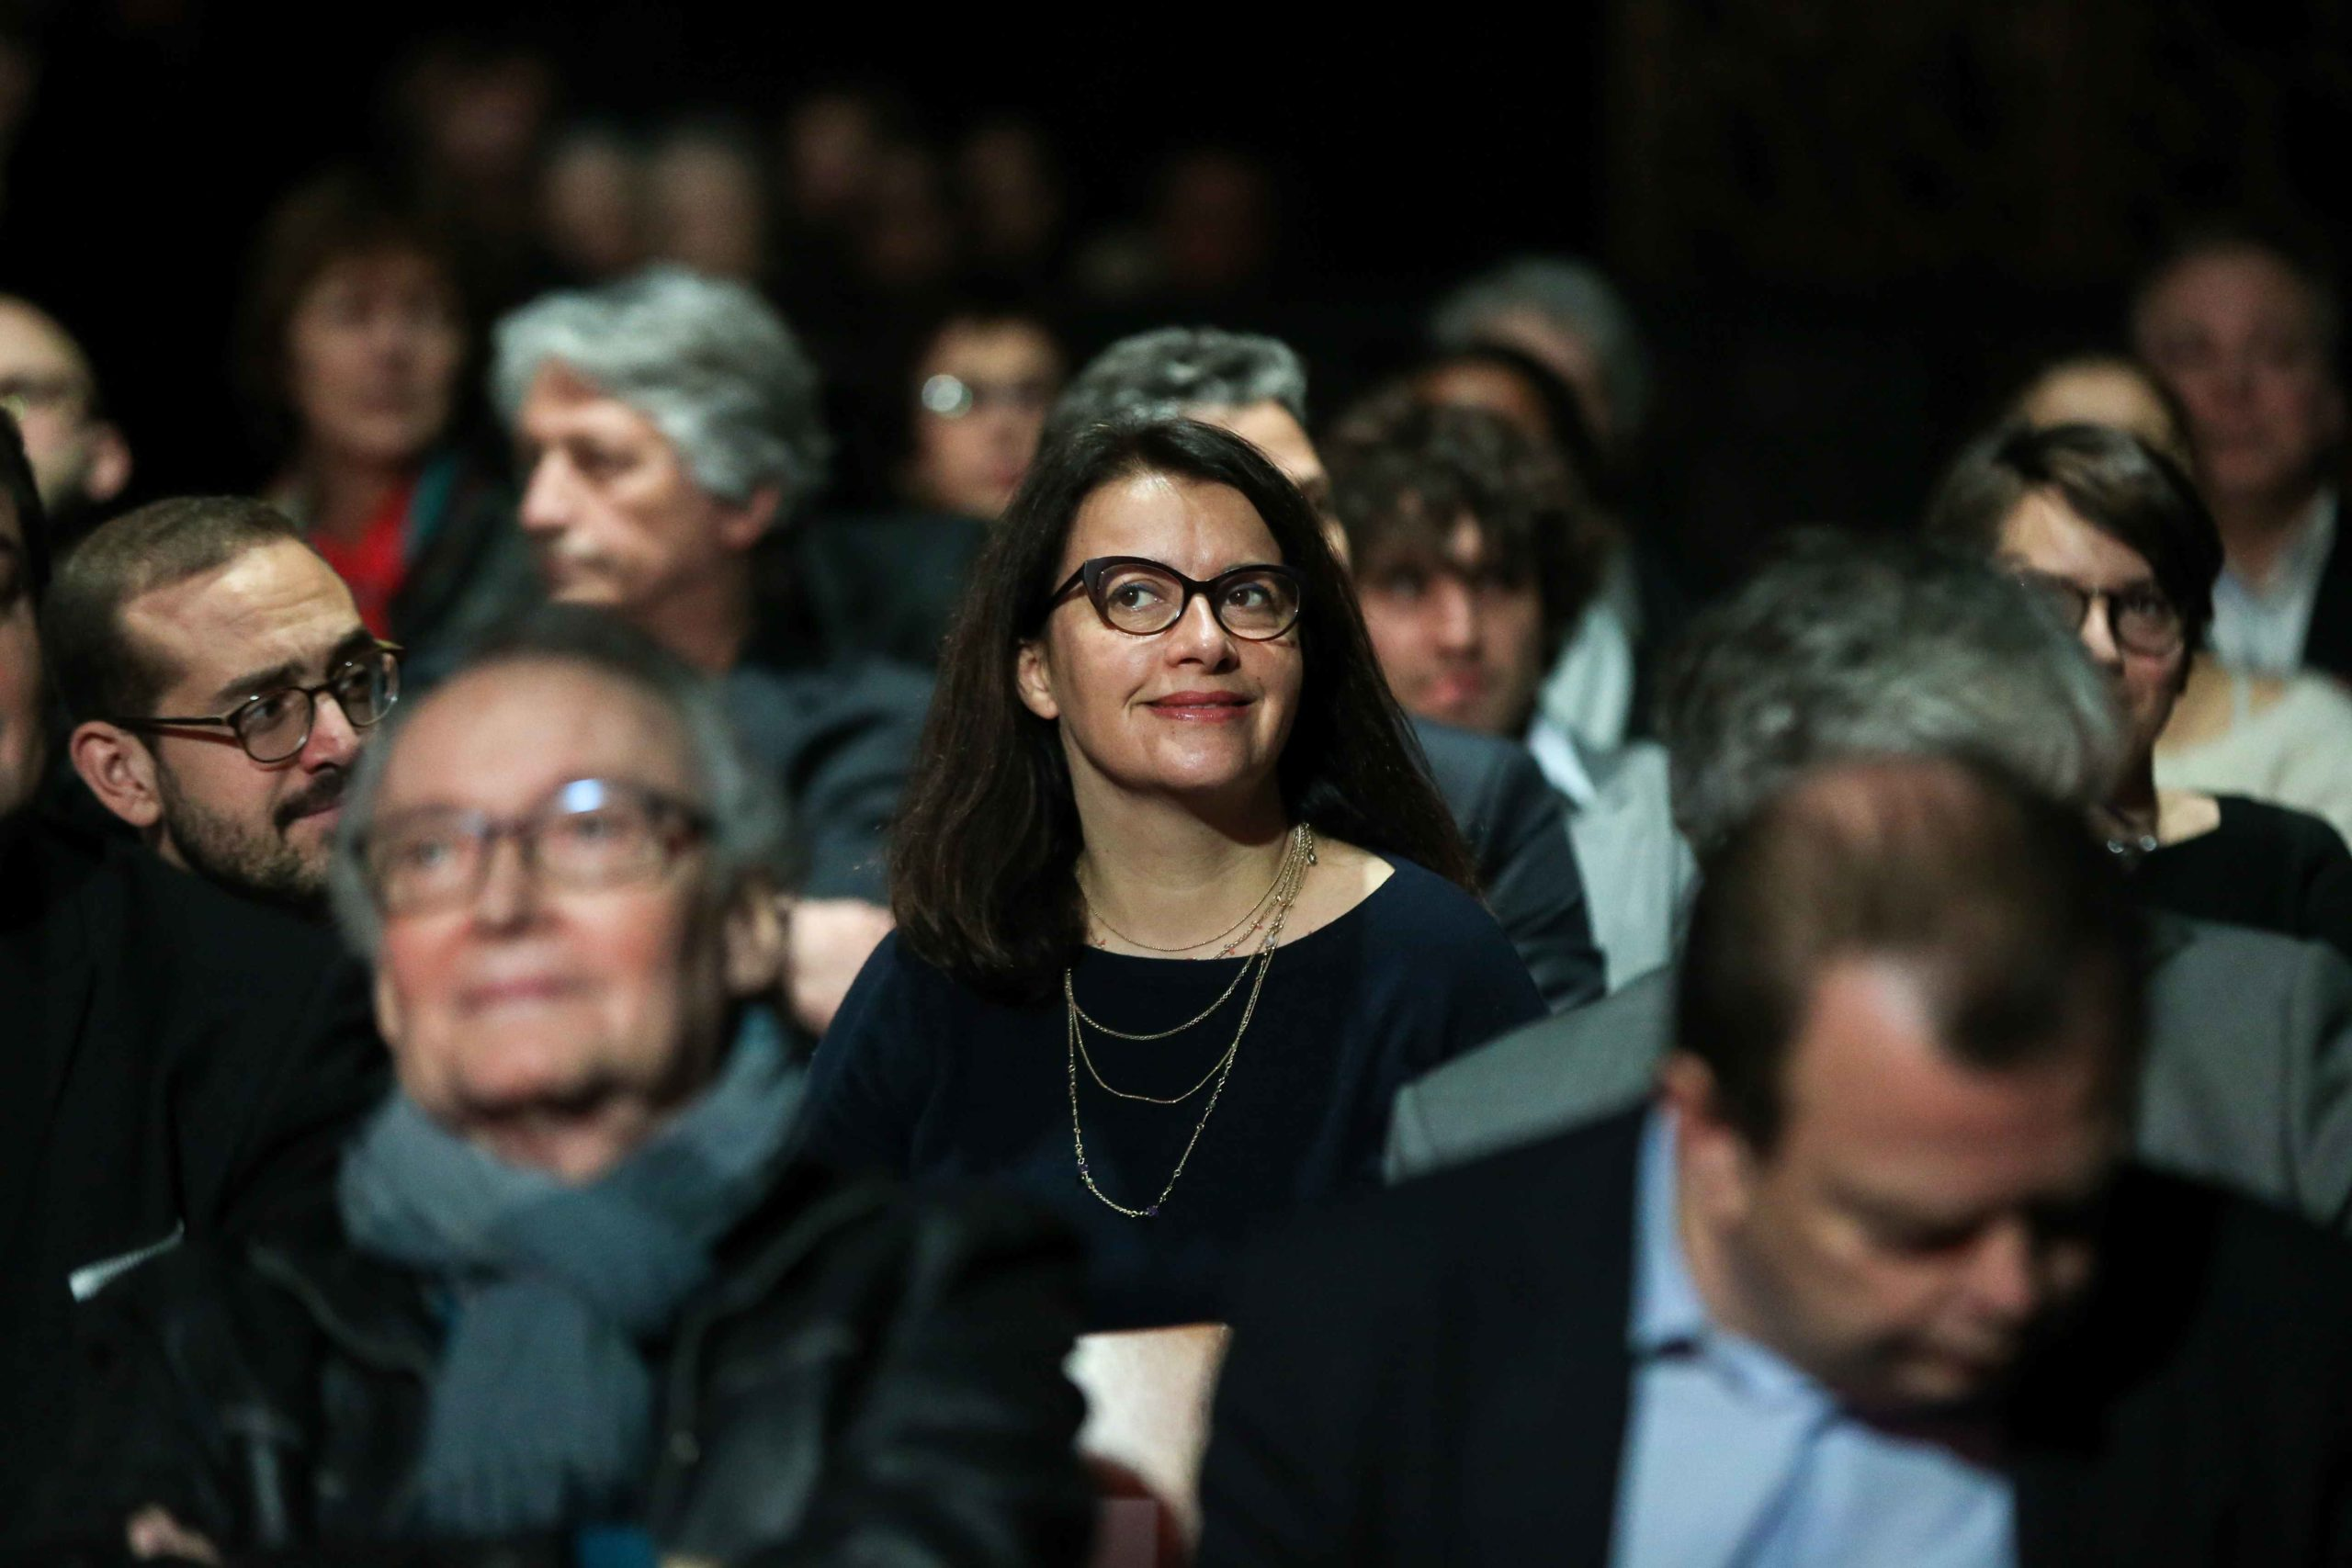 French Former Ecology minister and Head of Oxfam France Cecile Duflot (C) takes part in a report of the Abbe Pierre Foundation on poor quality housing conditions, on January 31, 2020 in La Defense, near Paris.